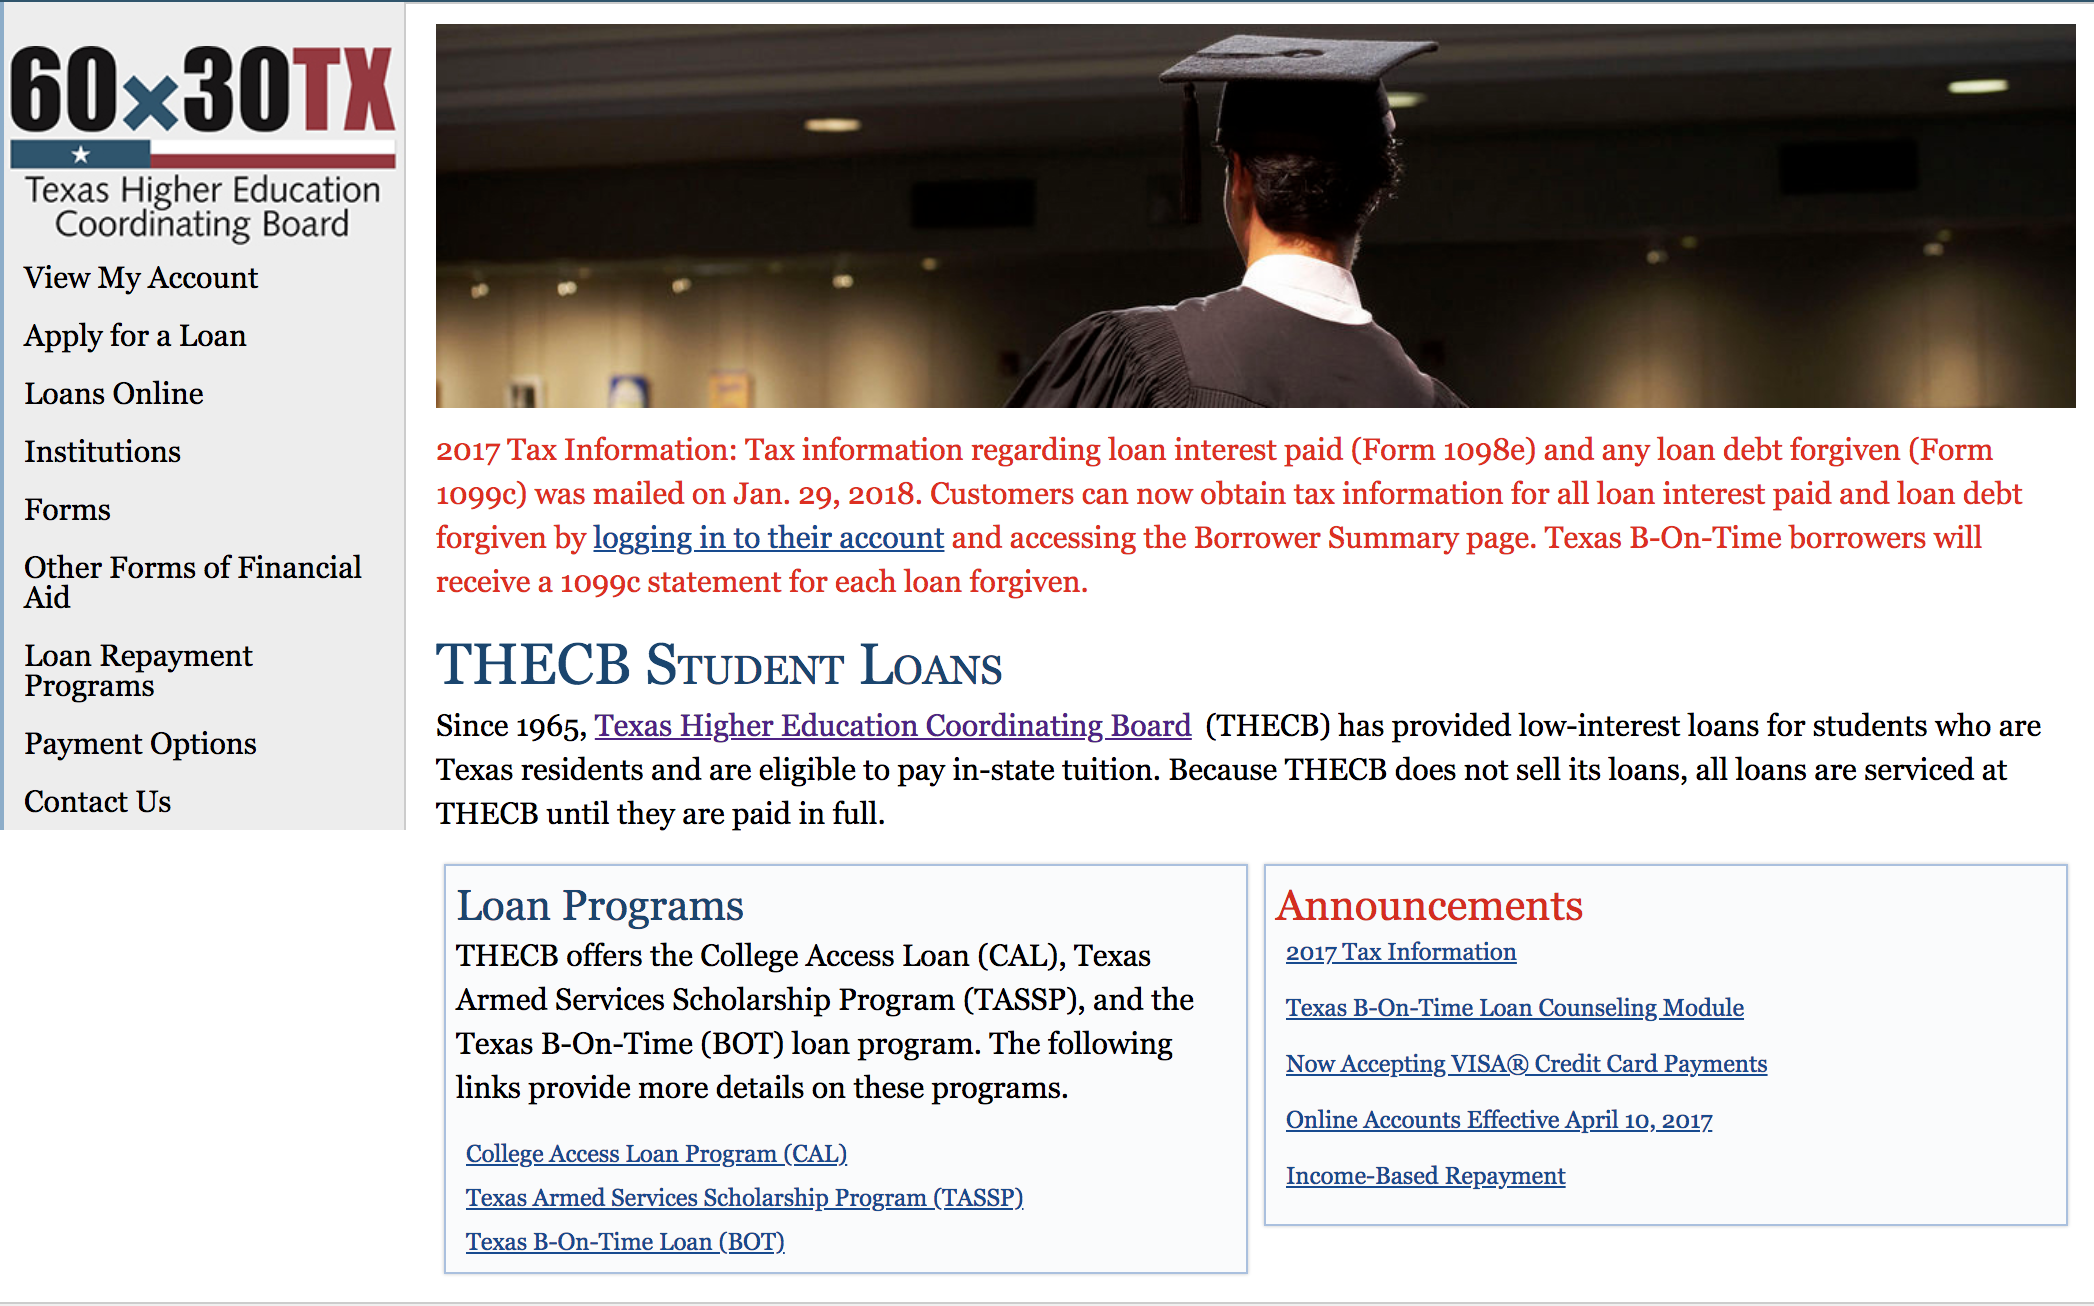 Screenshot of THECB homepage: Man in grad cap, 60x30TX logo